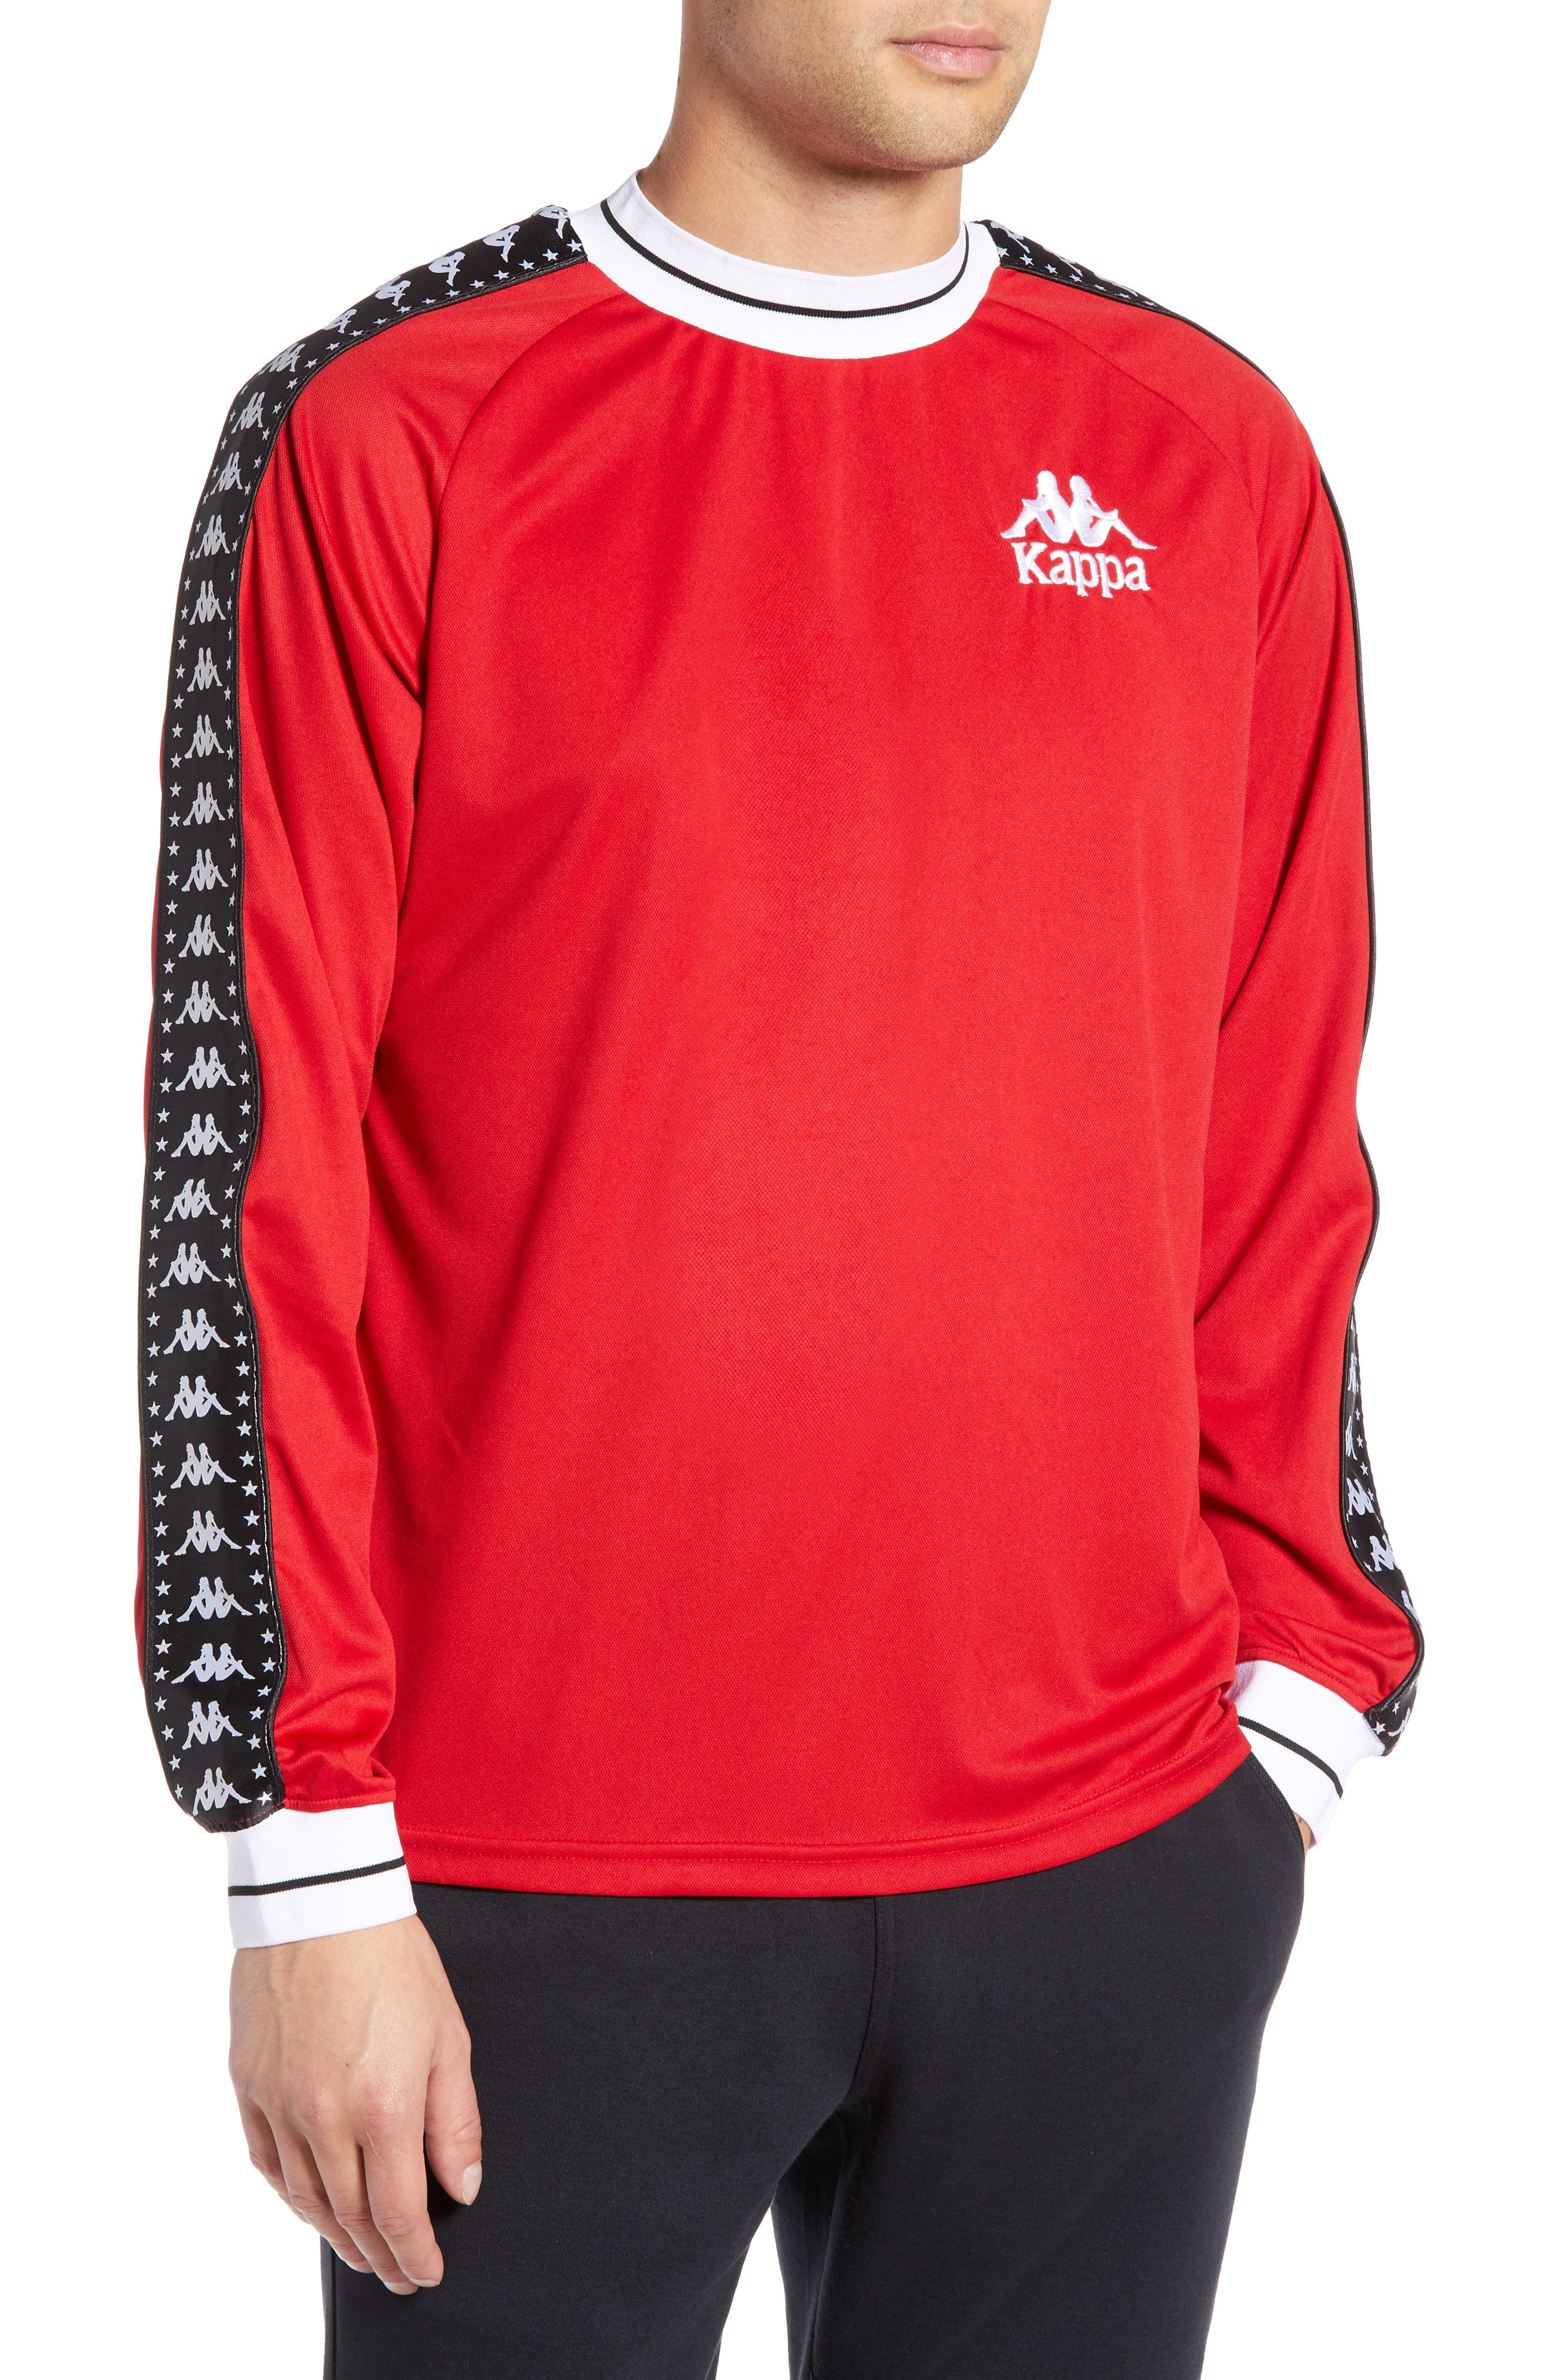 Authentic Aneat Logo Taped Long Sleeve T-Shirt,                         Main,                         color, RED/ BLACK/ WHITE